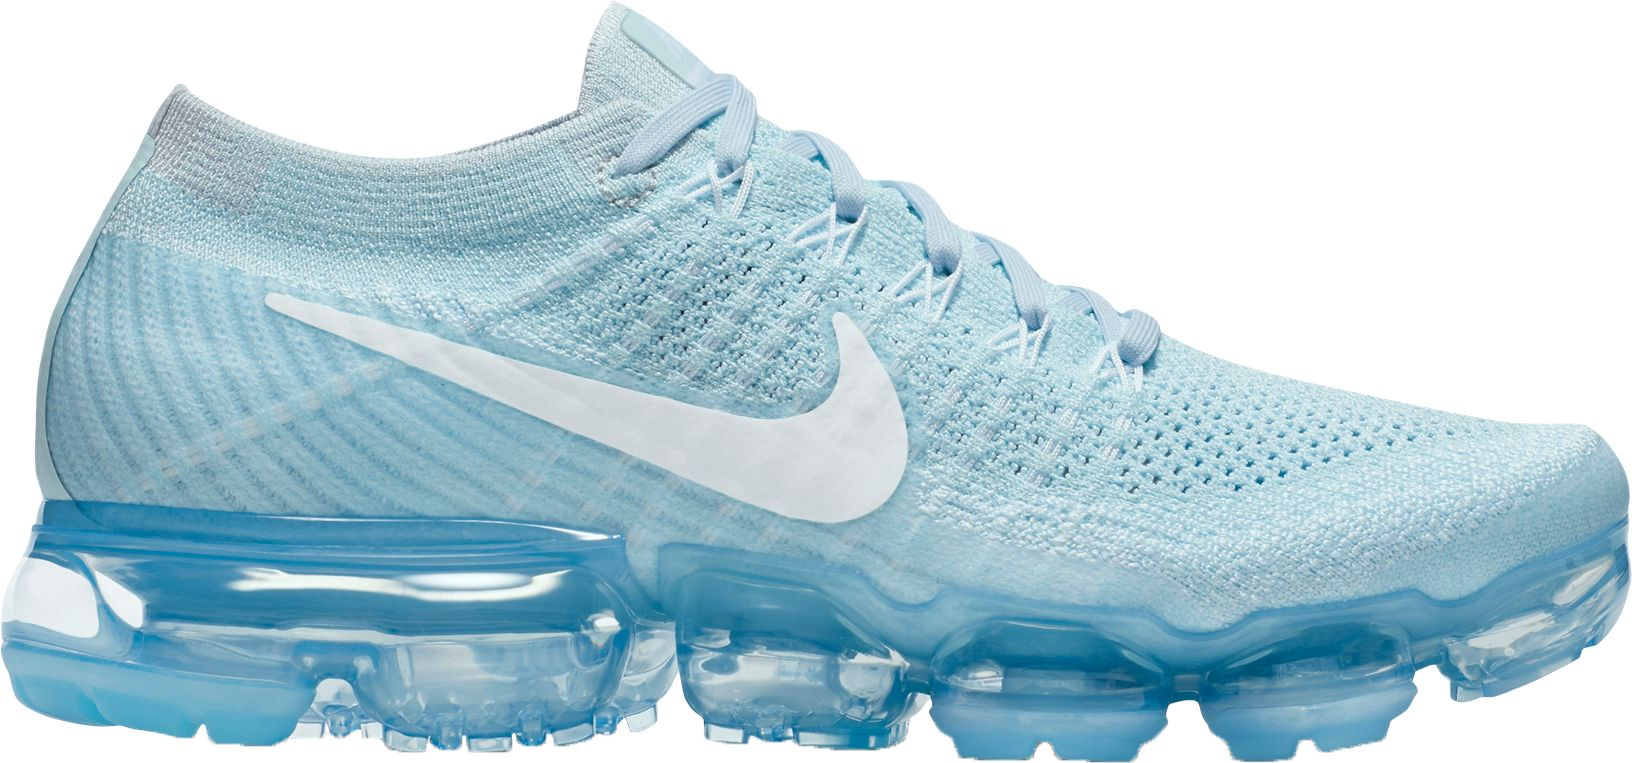 Watch Nike VaporMax Interview What To Expect, Upcoming Qoll